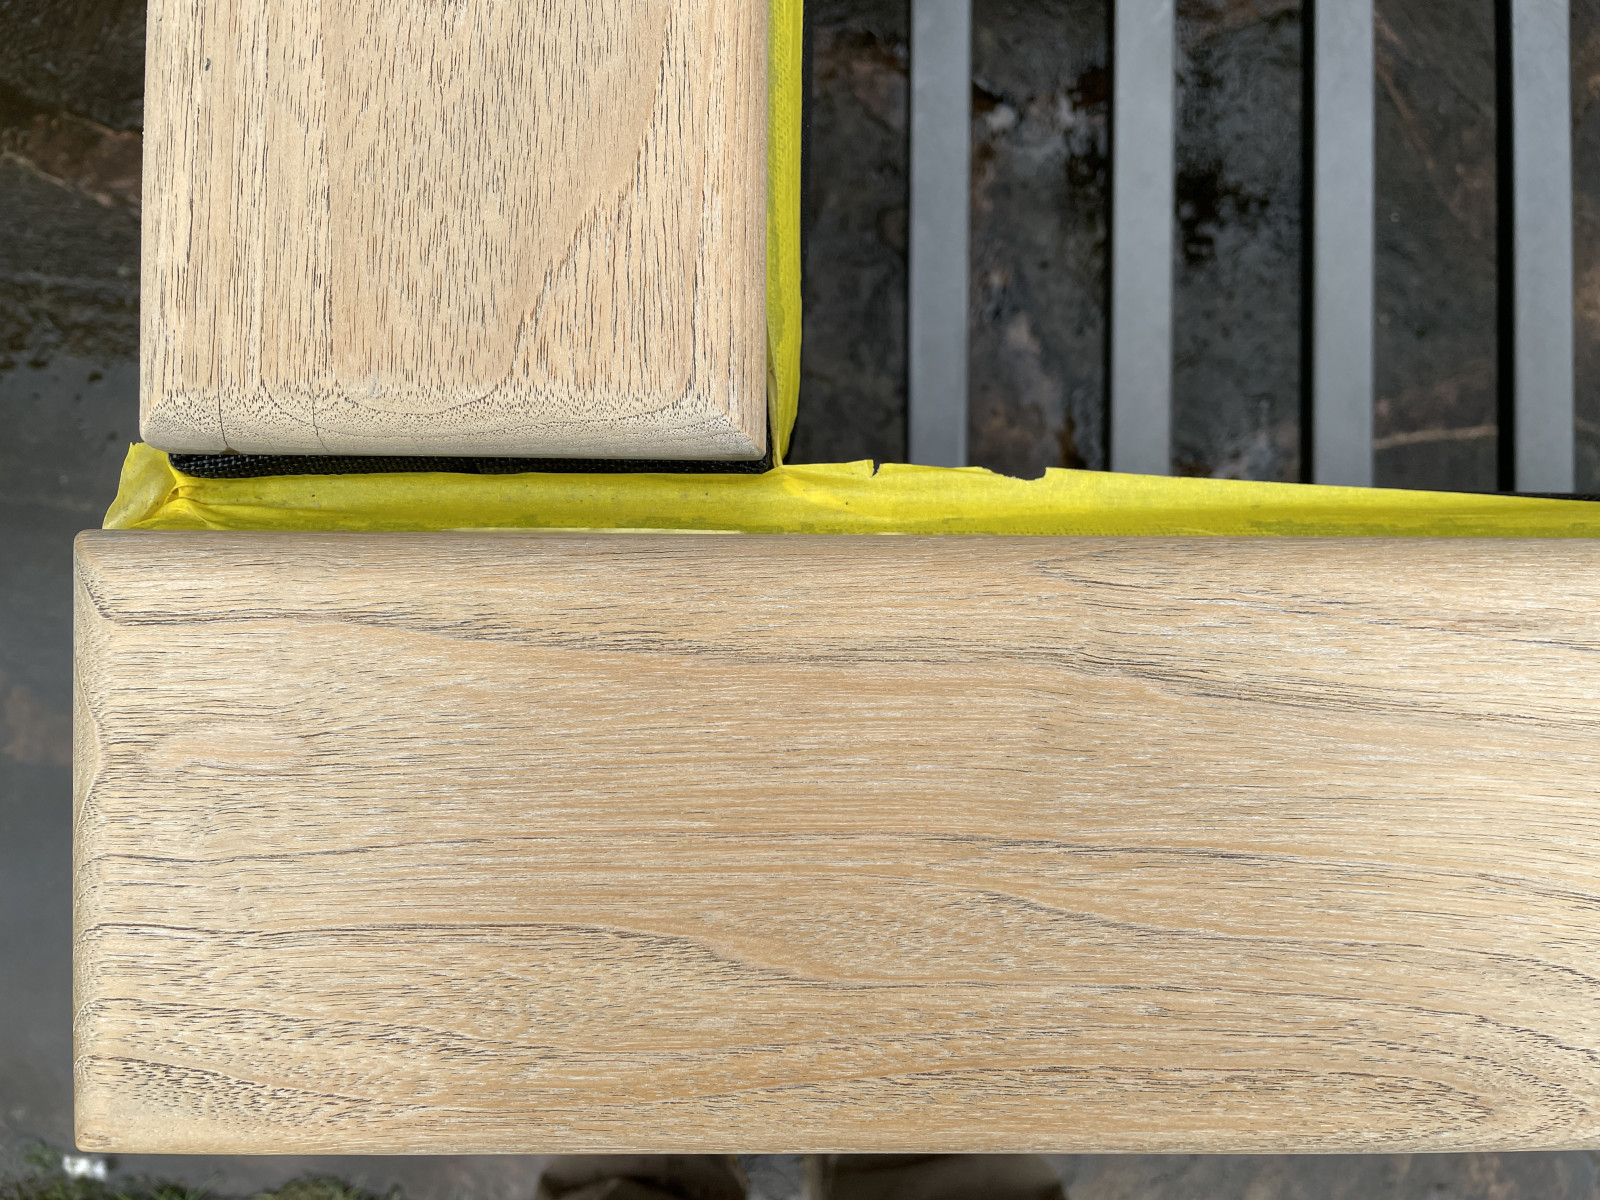 A close up view after using Barlow Tyrie's teak cleaner.